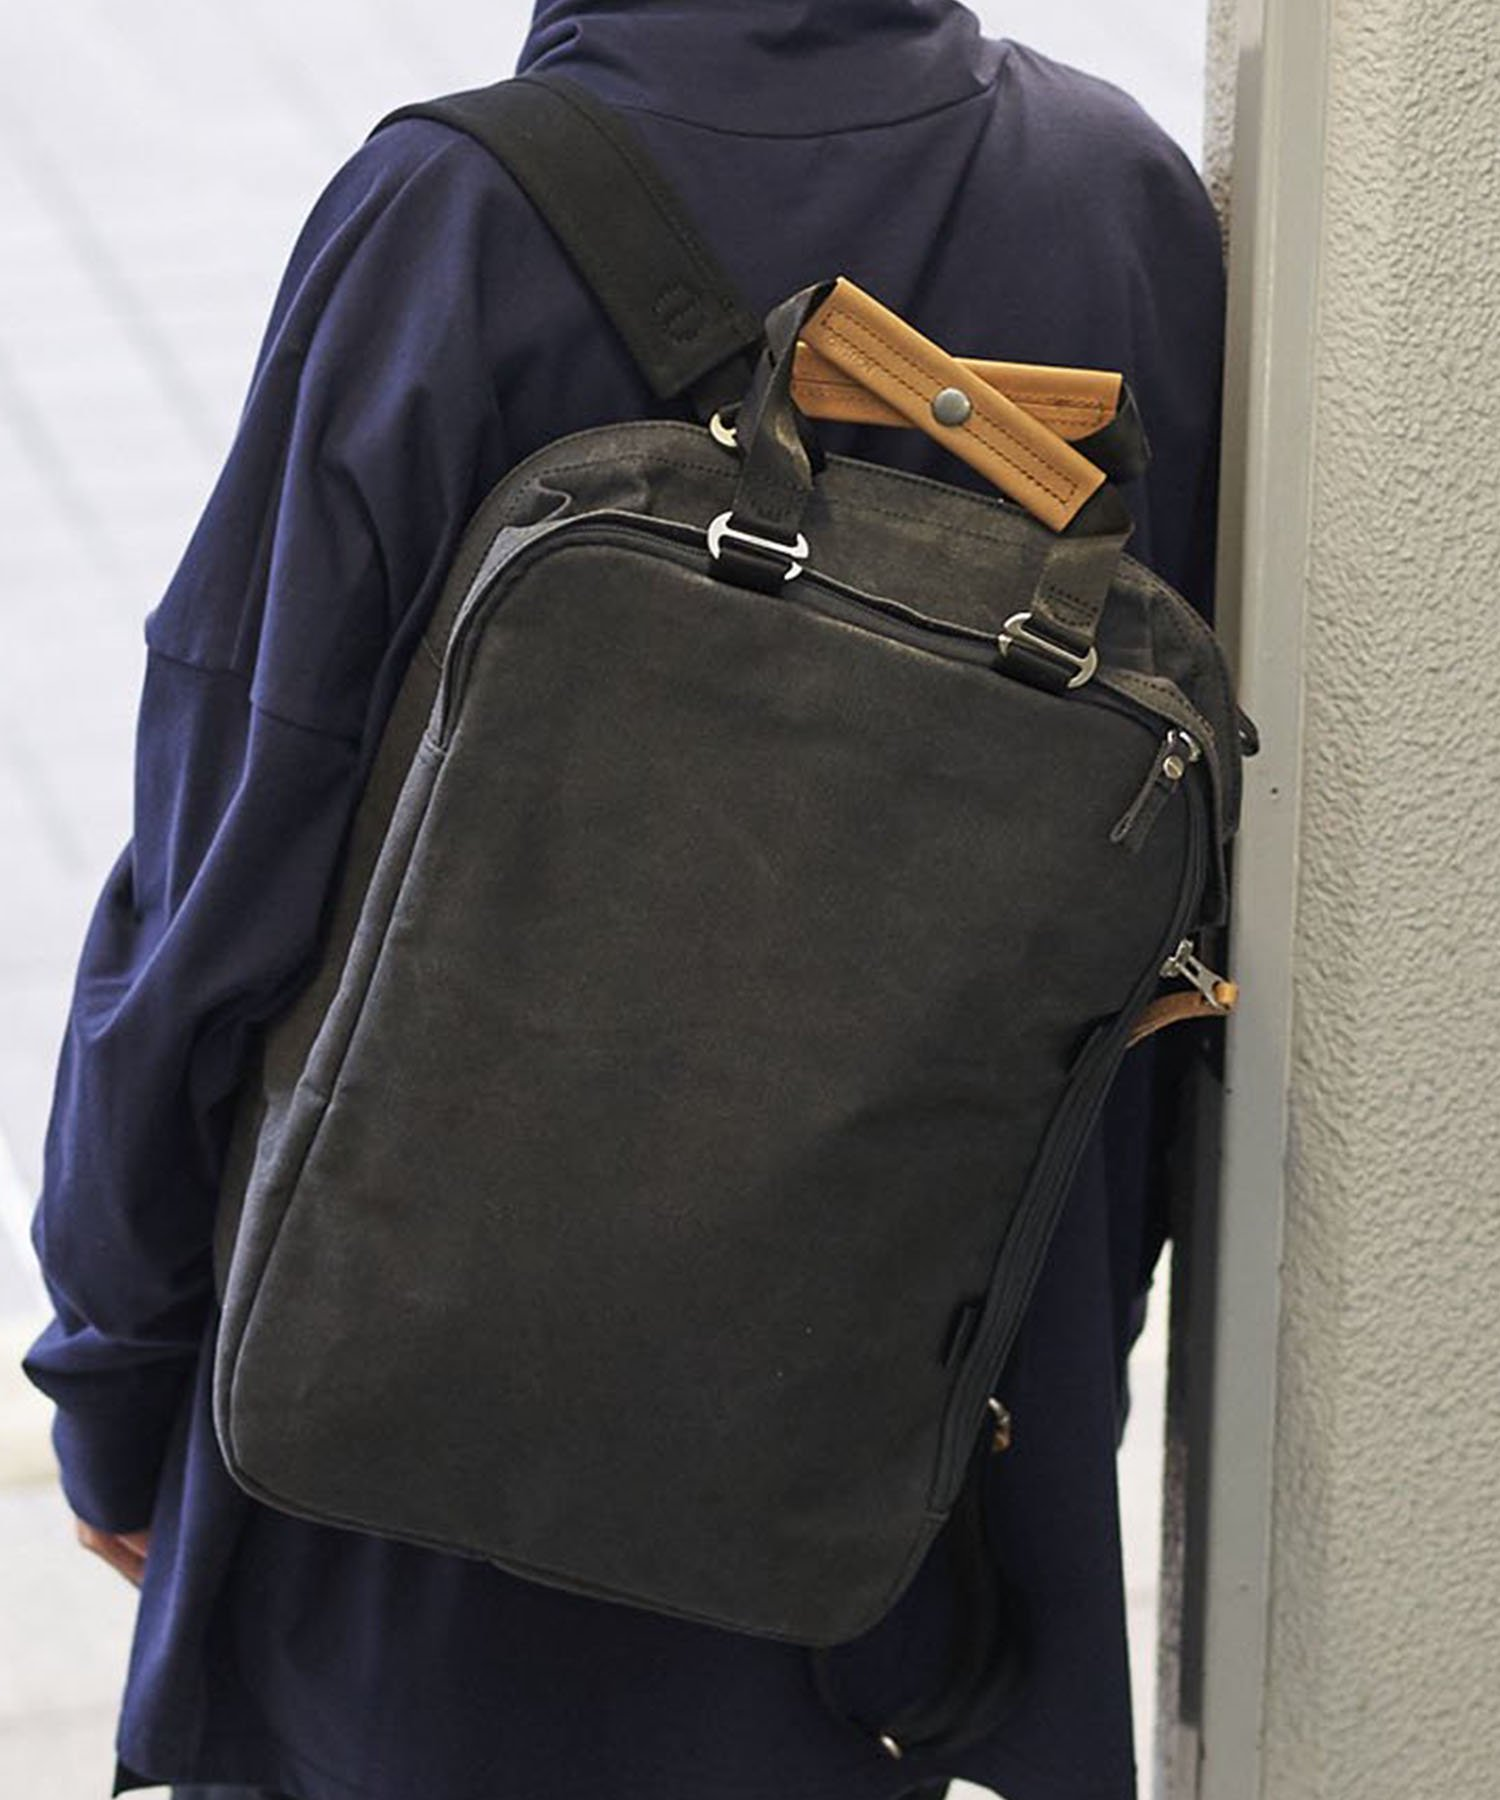 【QWSTION】Daypack Organic Washed Black